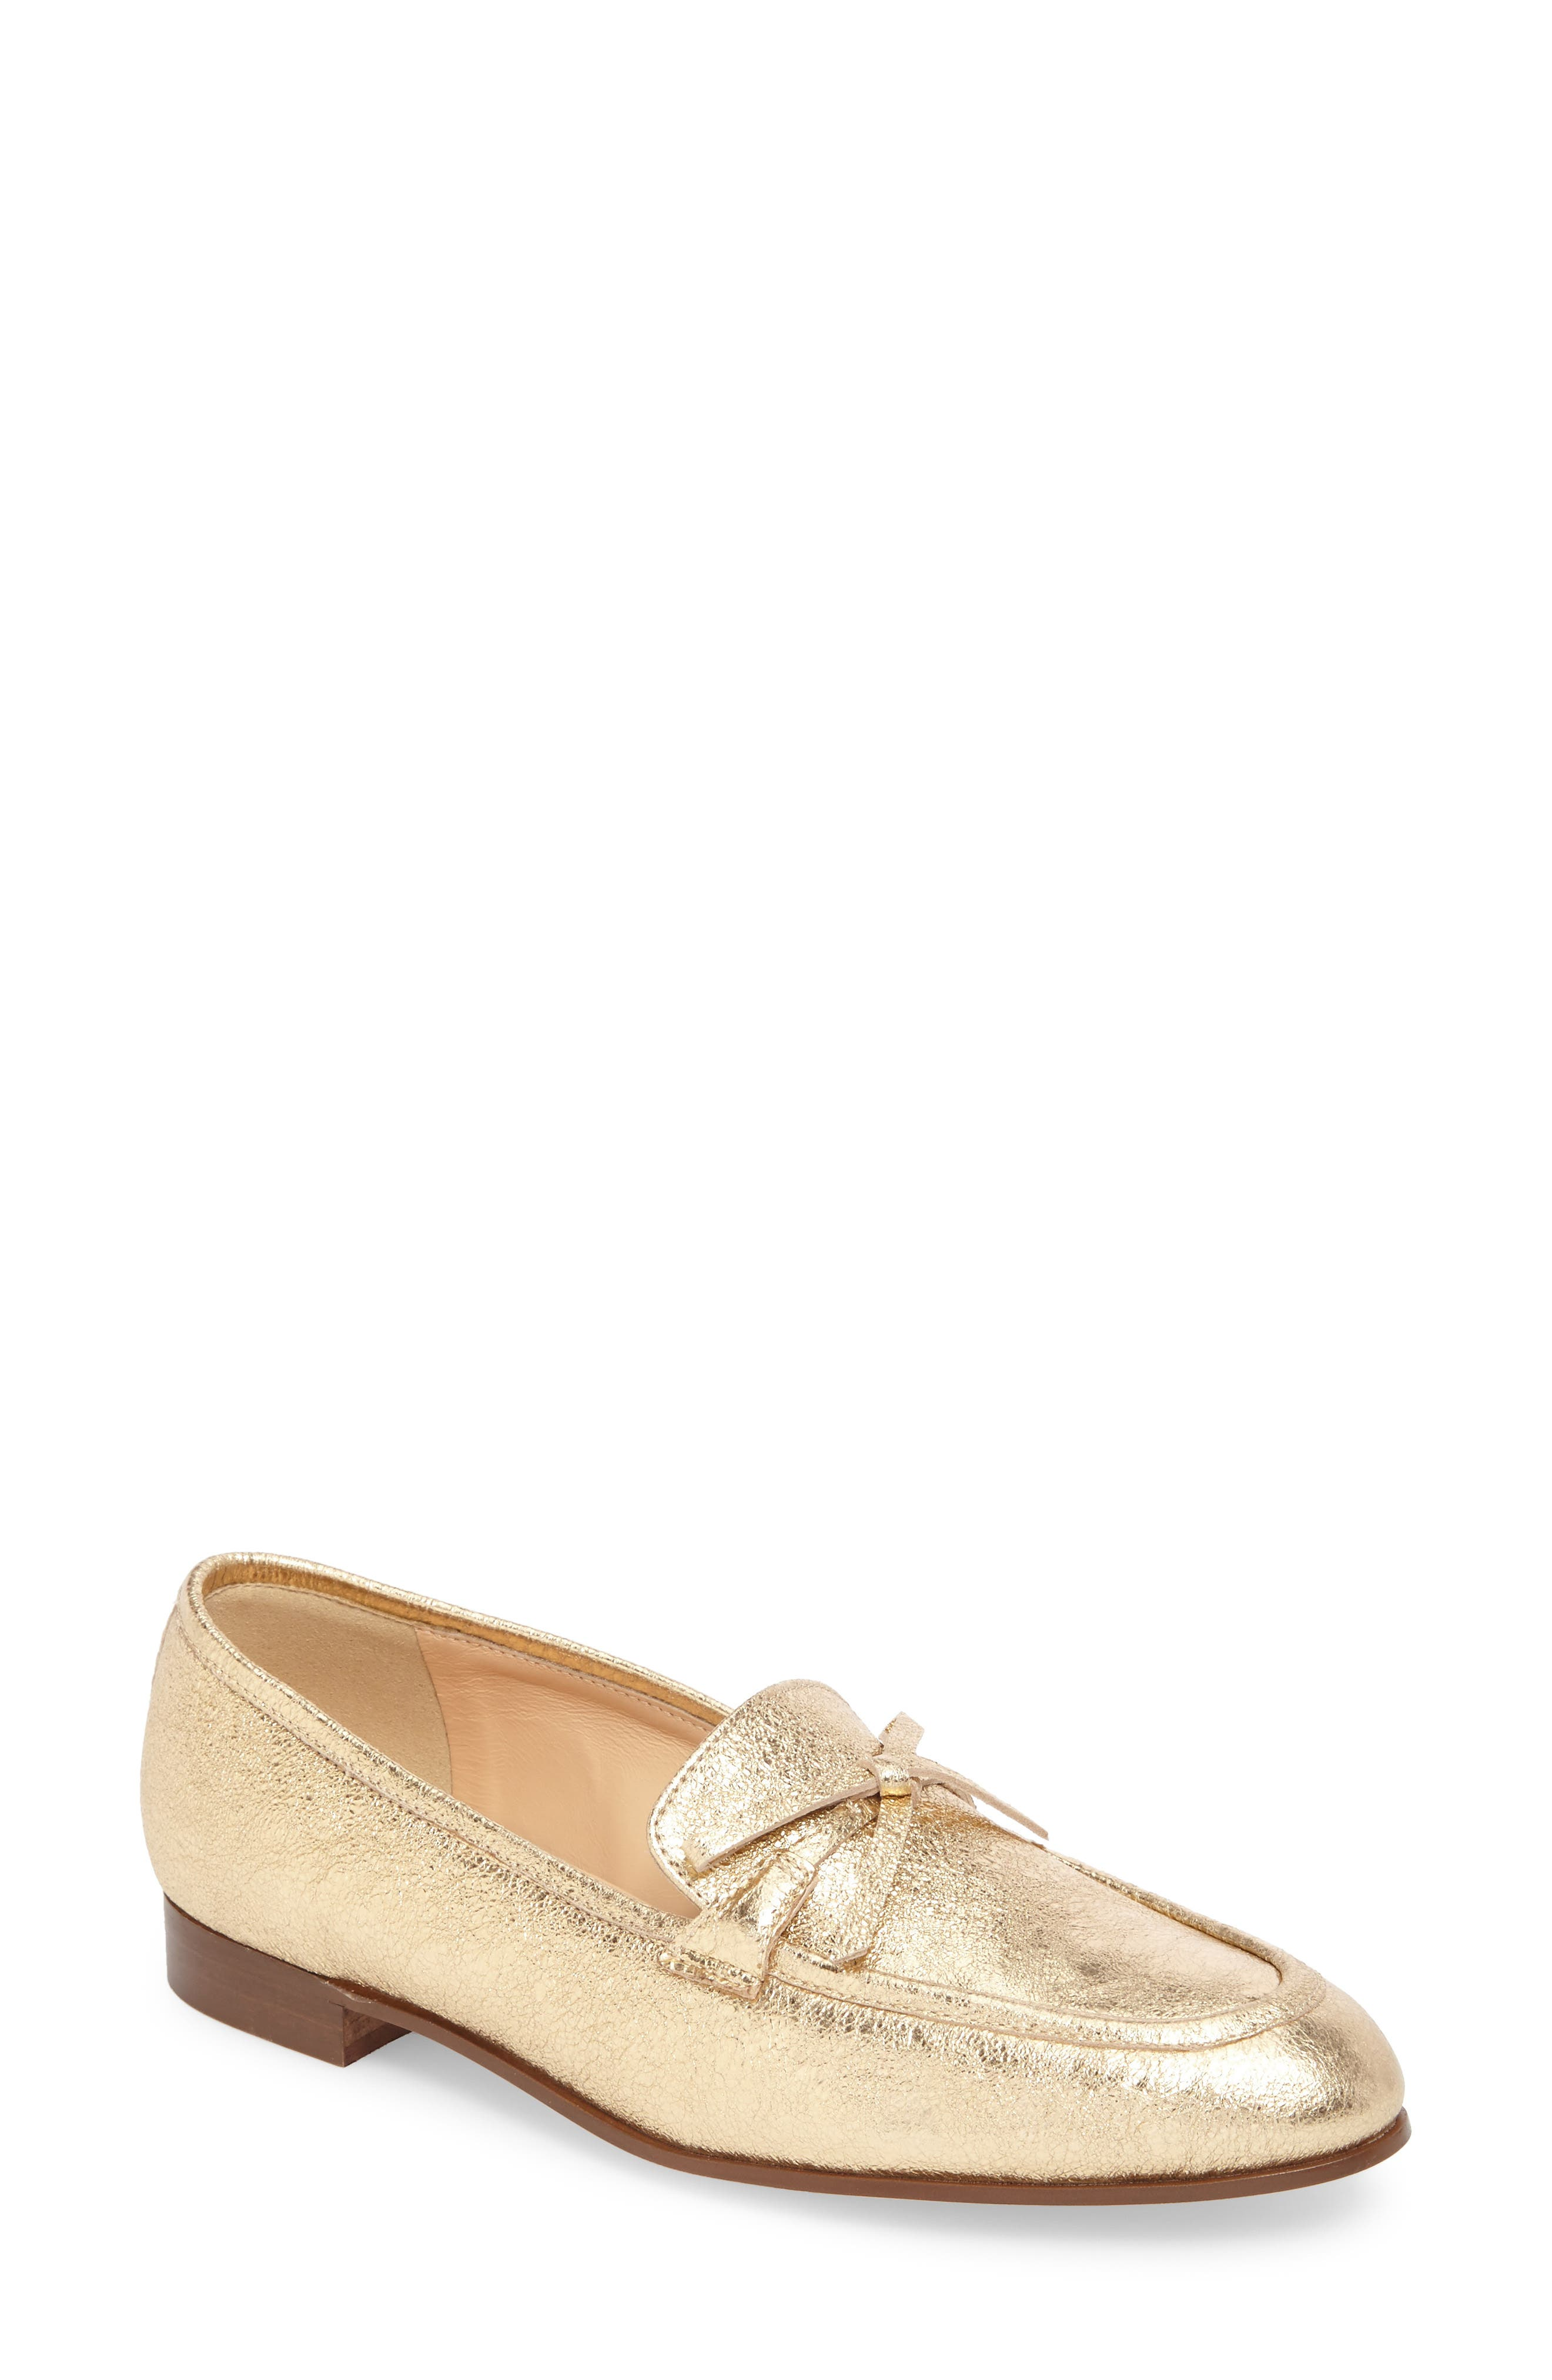 J. Crew Metallic Bow Loafer,                             Main thumbnail 1, color,                             710